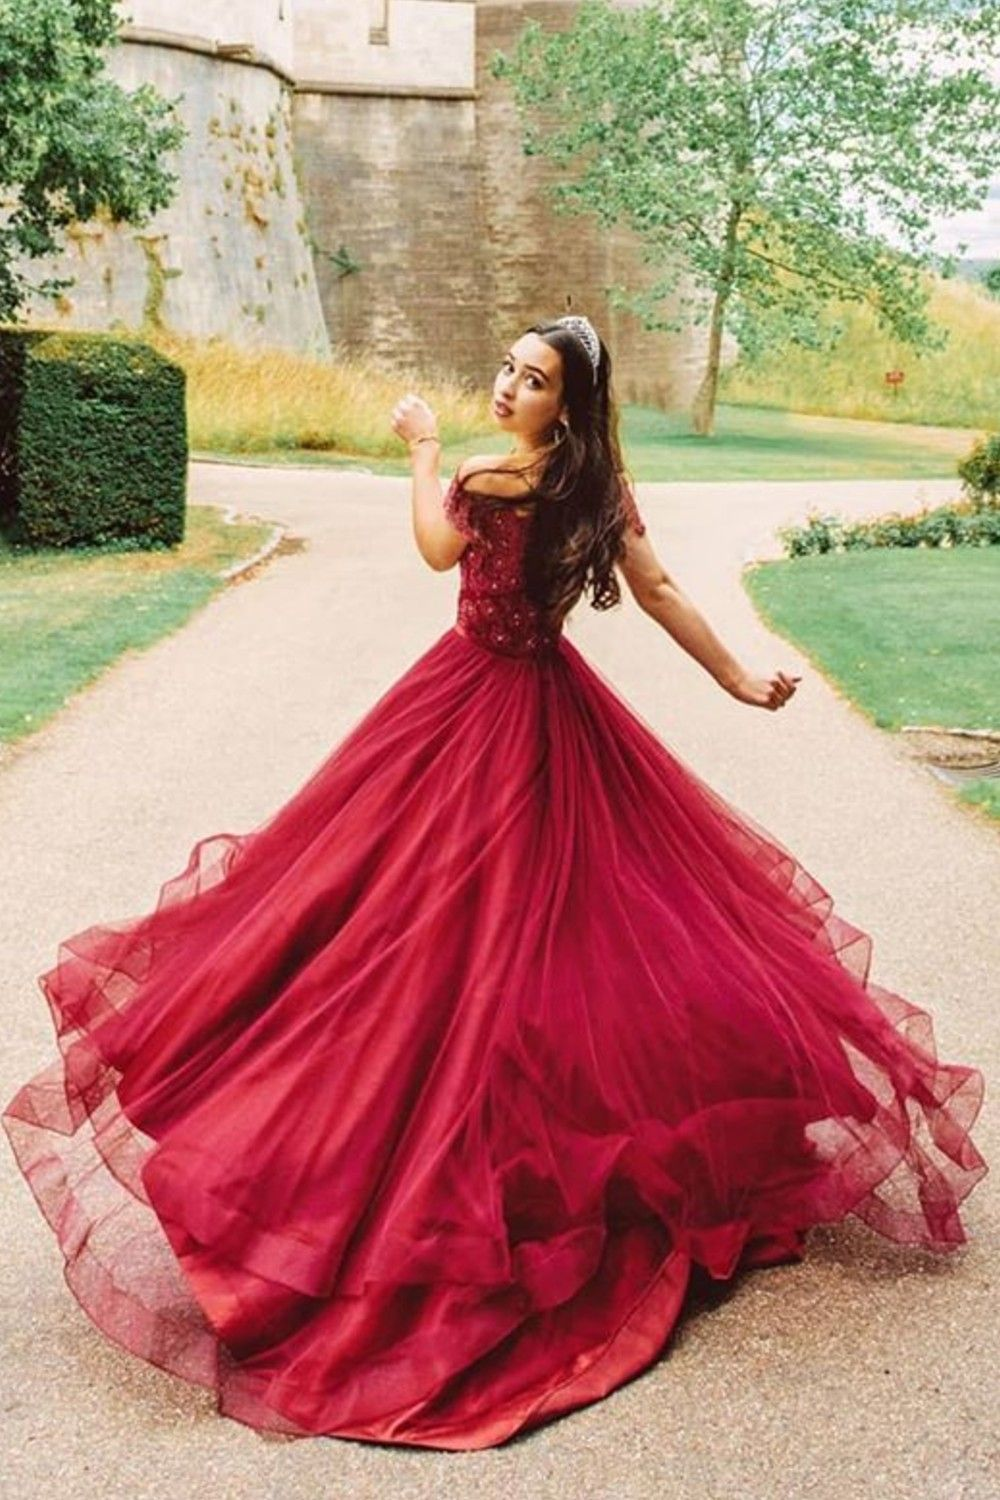 Us 90 00 A Line Off The Shoulder Asymmetrical Tulle Prom Dresses With Beading Sequins Bow S Jj S House Tulle Prom Dress Dresses Prom Dresses [ 1500 x 1000 Pixel ]